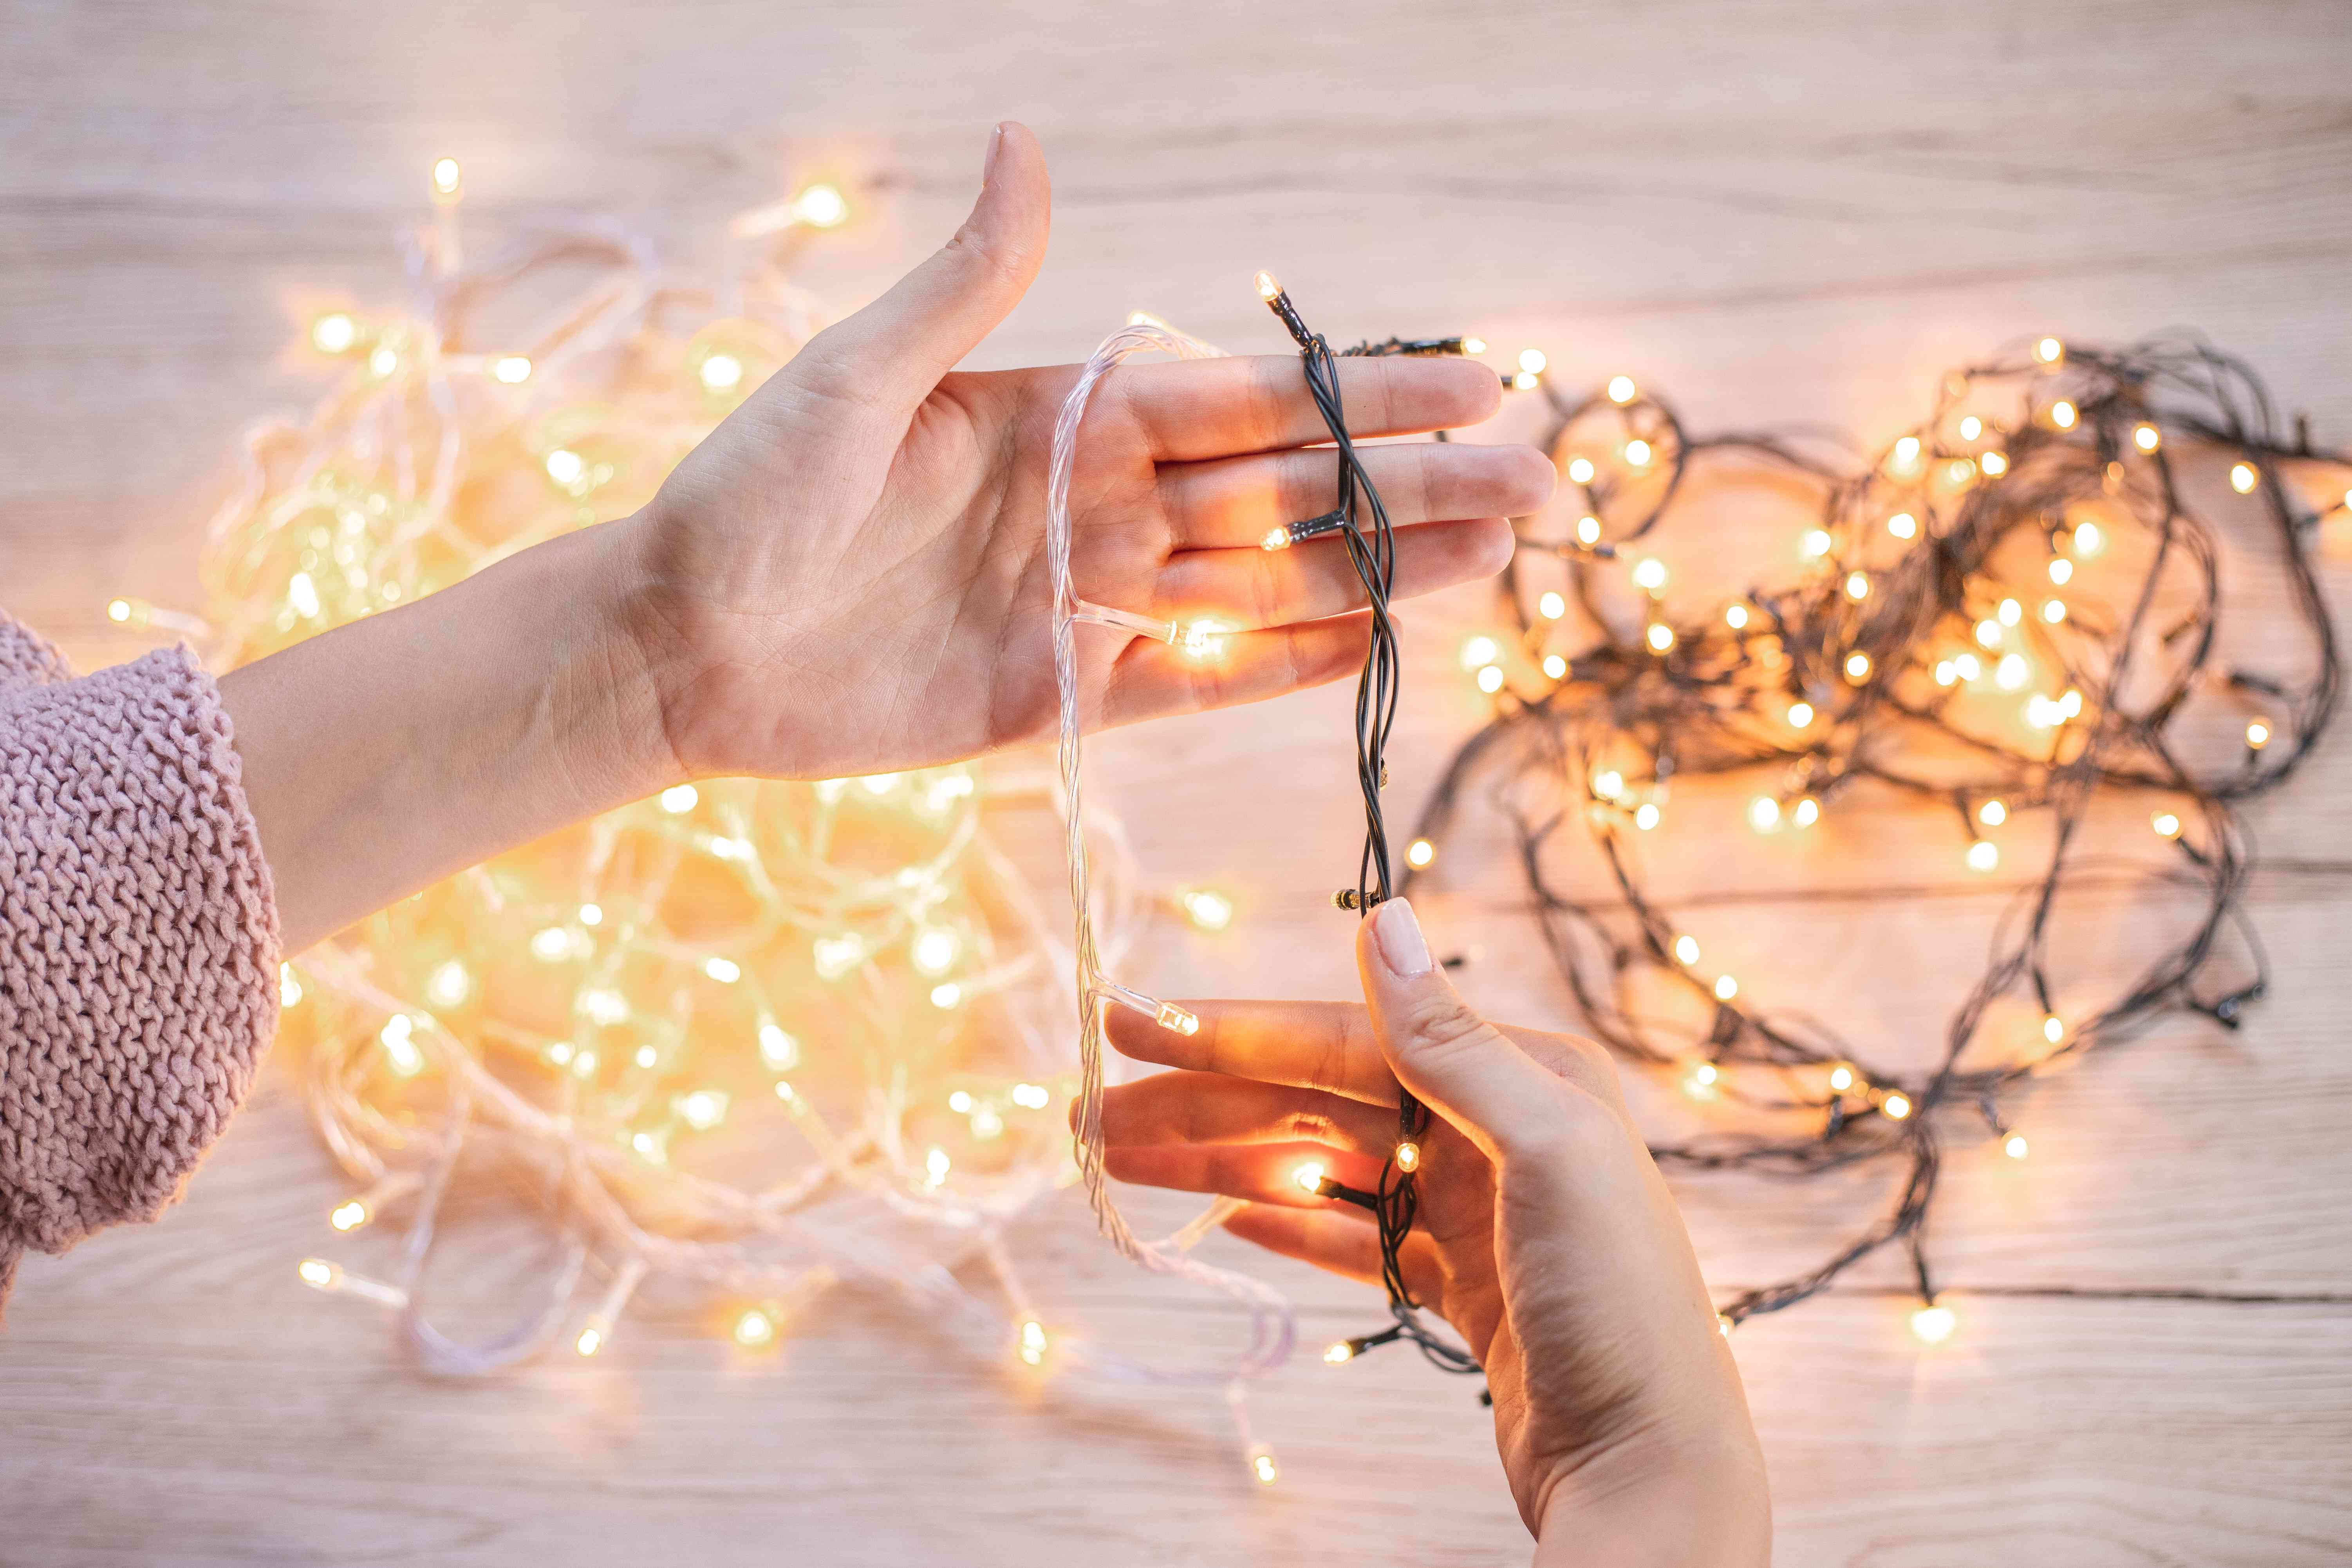 hands compare different bundles of glowing LED Christmas lights